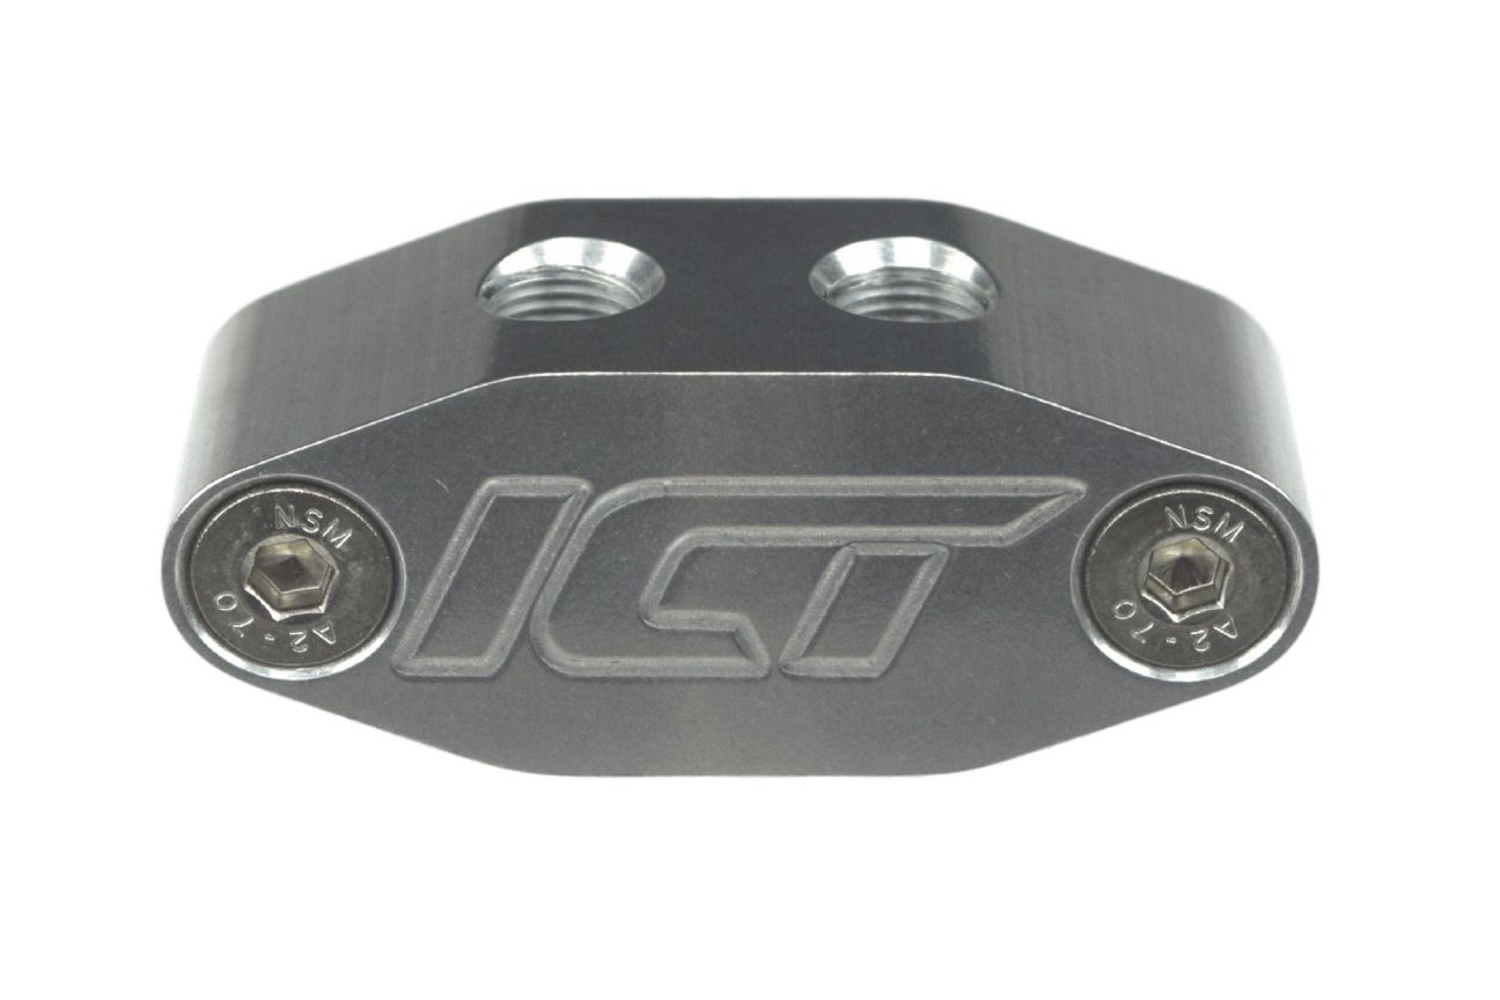 ICT Billet 551541 Oil Cooler Block Off Plate, 16 mm x 1.5 Female Port / 1/8 in NPT Female Ports, Hardware / O-Ring, Aluminum, Natural, GM LS-Series, Each